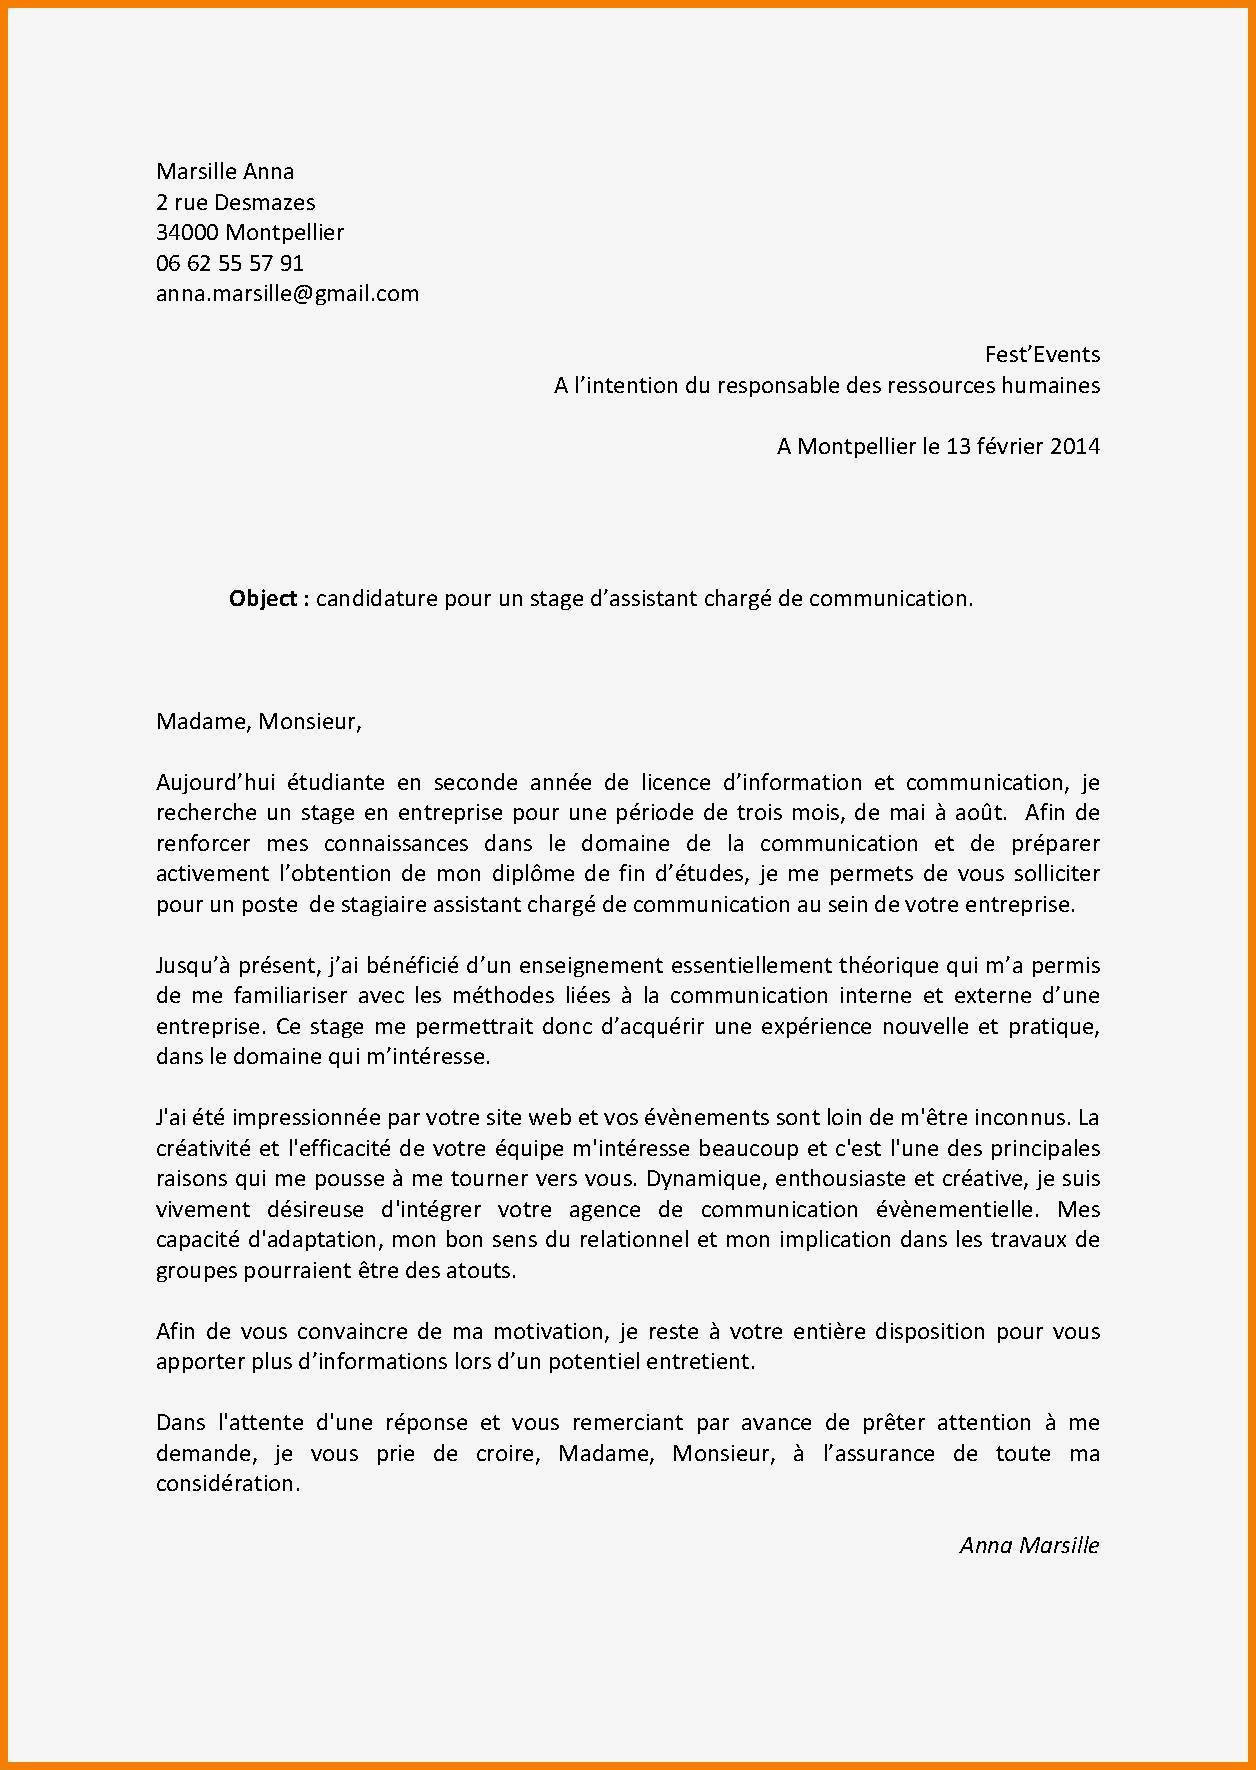 Lettre De Motivation Licence Rh Alternance Exemple Lettre De Motivation assistant Rh Alternance Lettre De